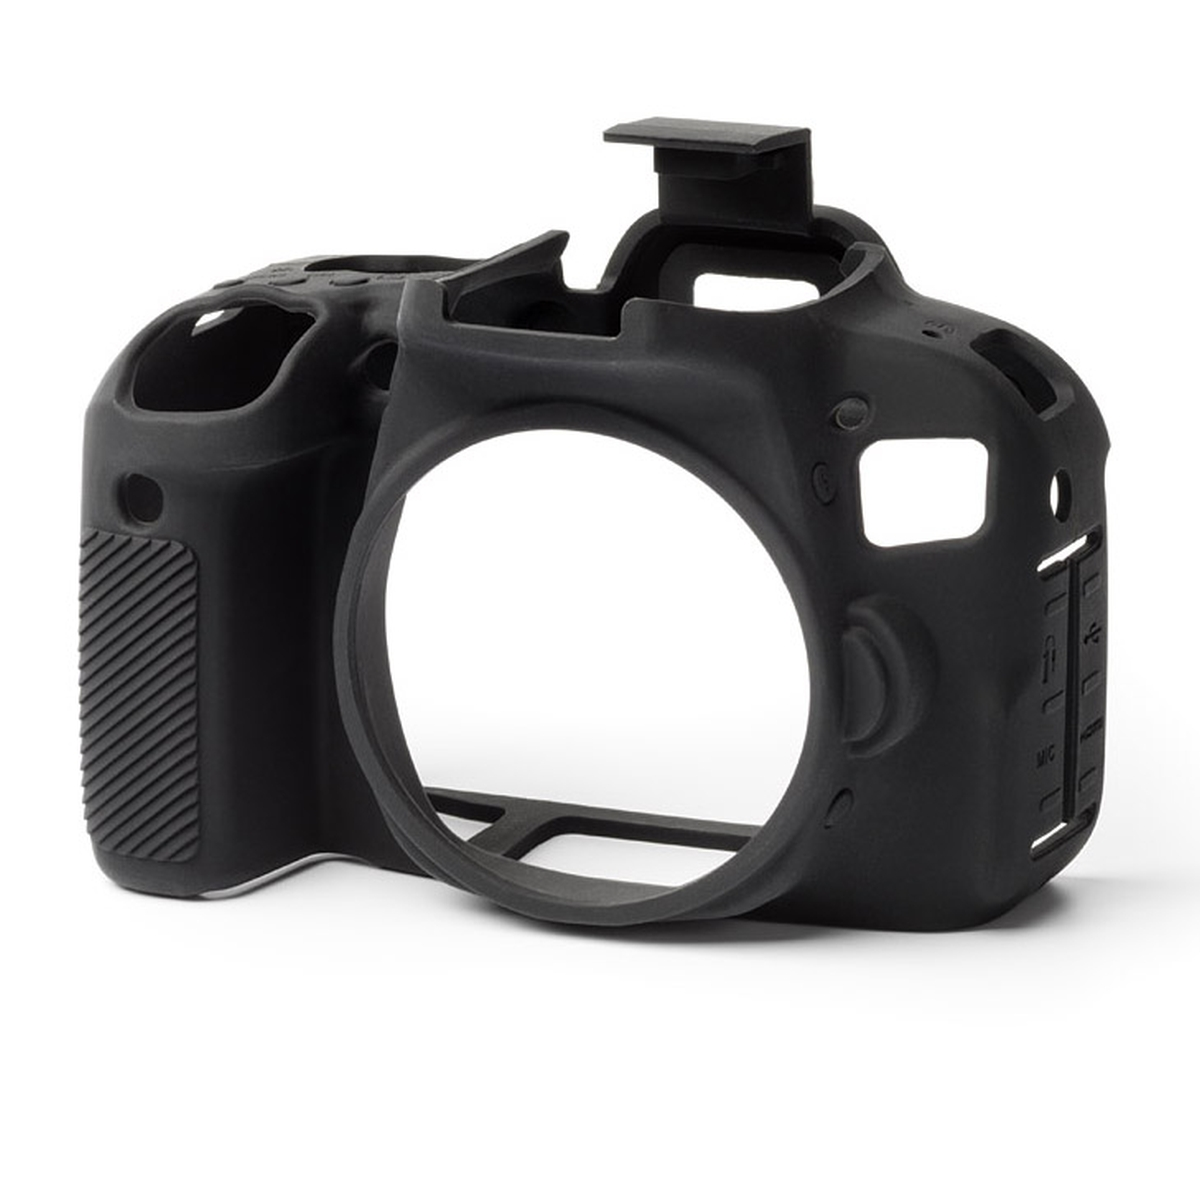 Walimex pro easyCover for Canon 800D